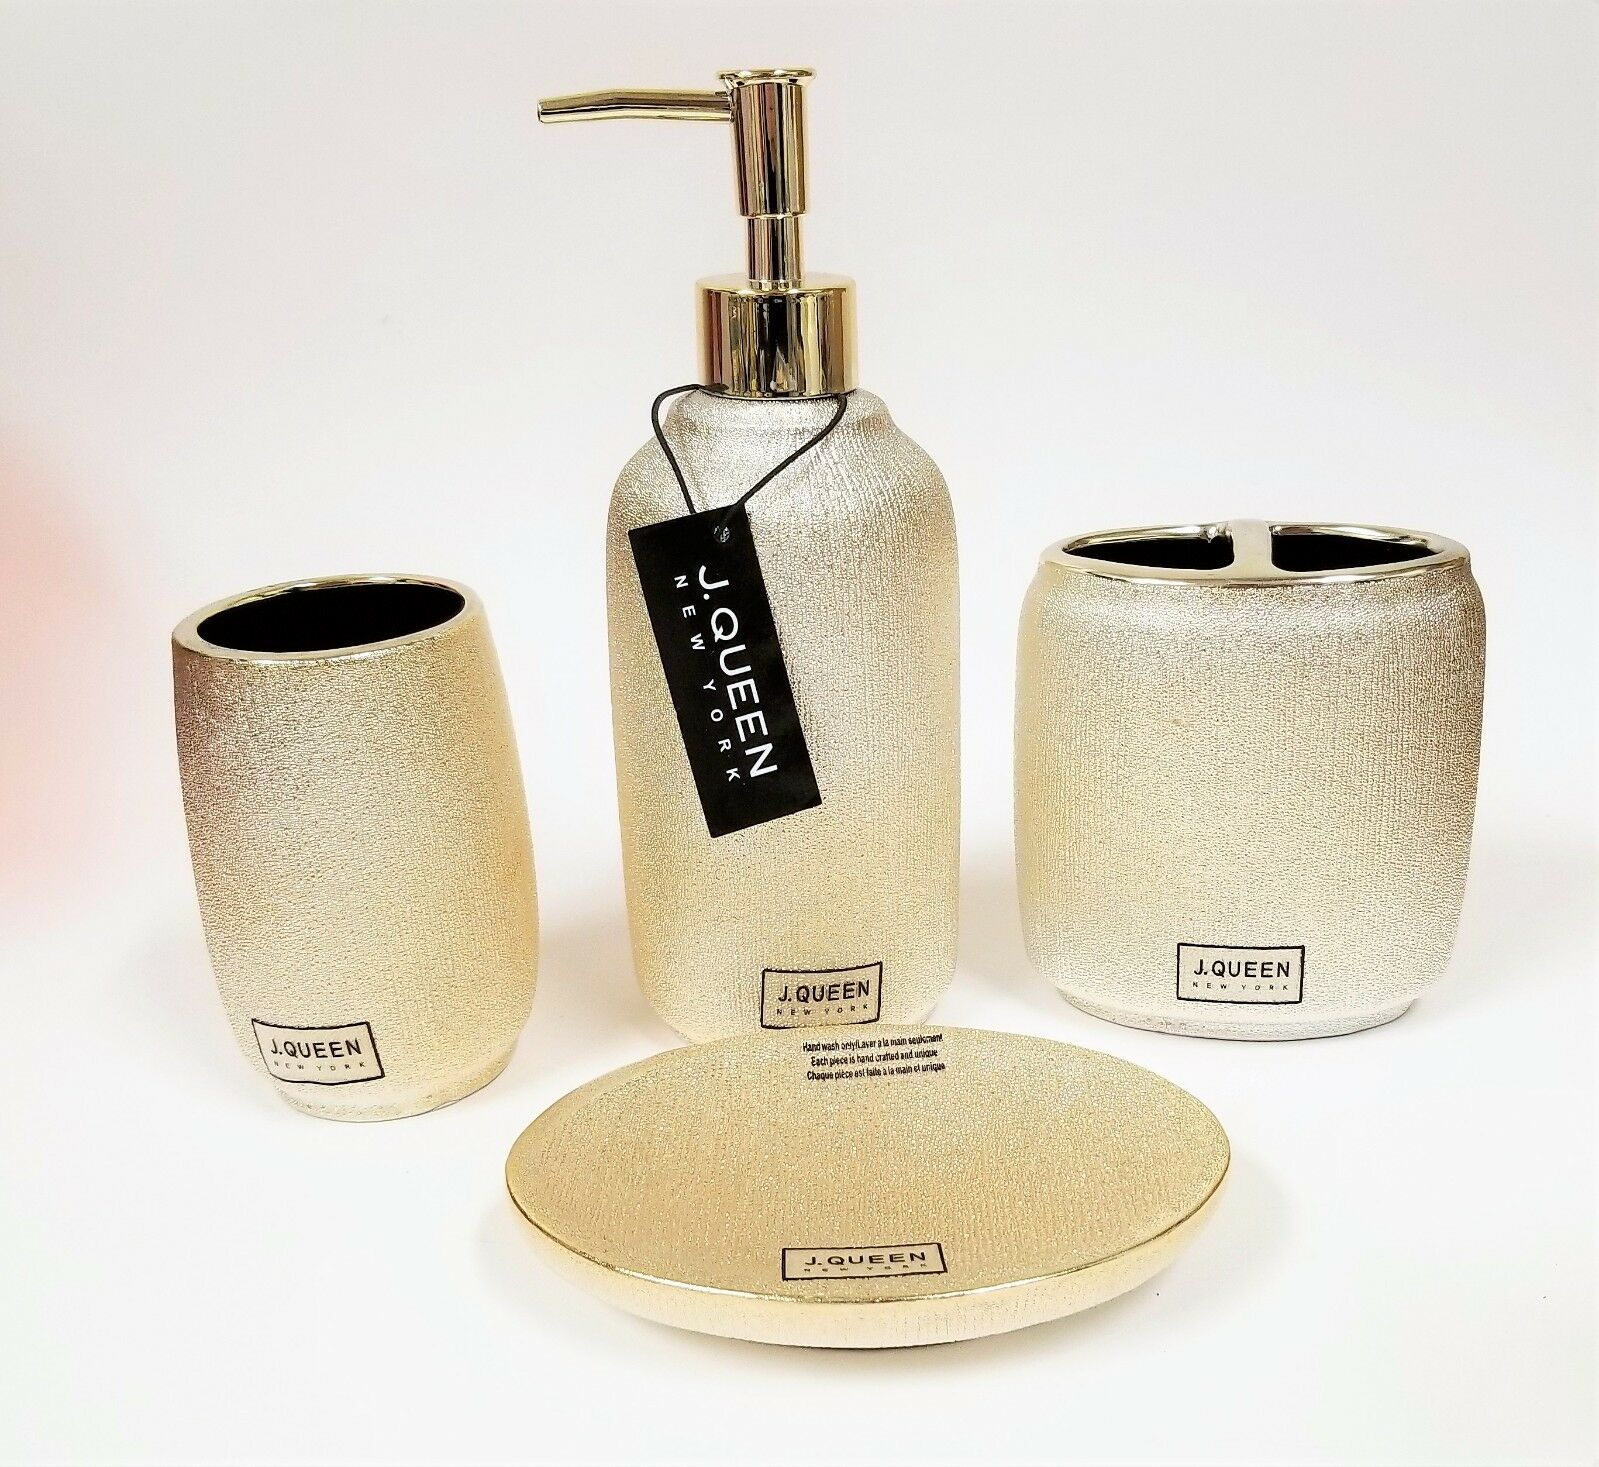 NEW J.QUEEN 4 PC SET METALLIC PALE Gold CHAMPAGNE CERAMIC SOAP DISPENSER+DISH+2